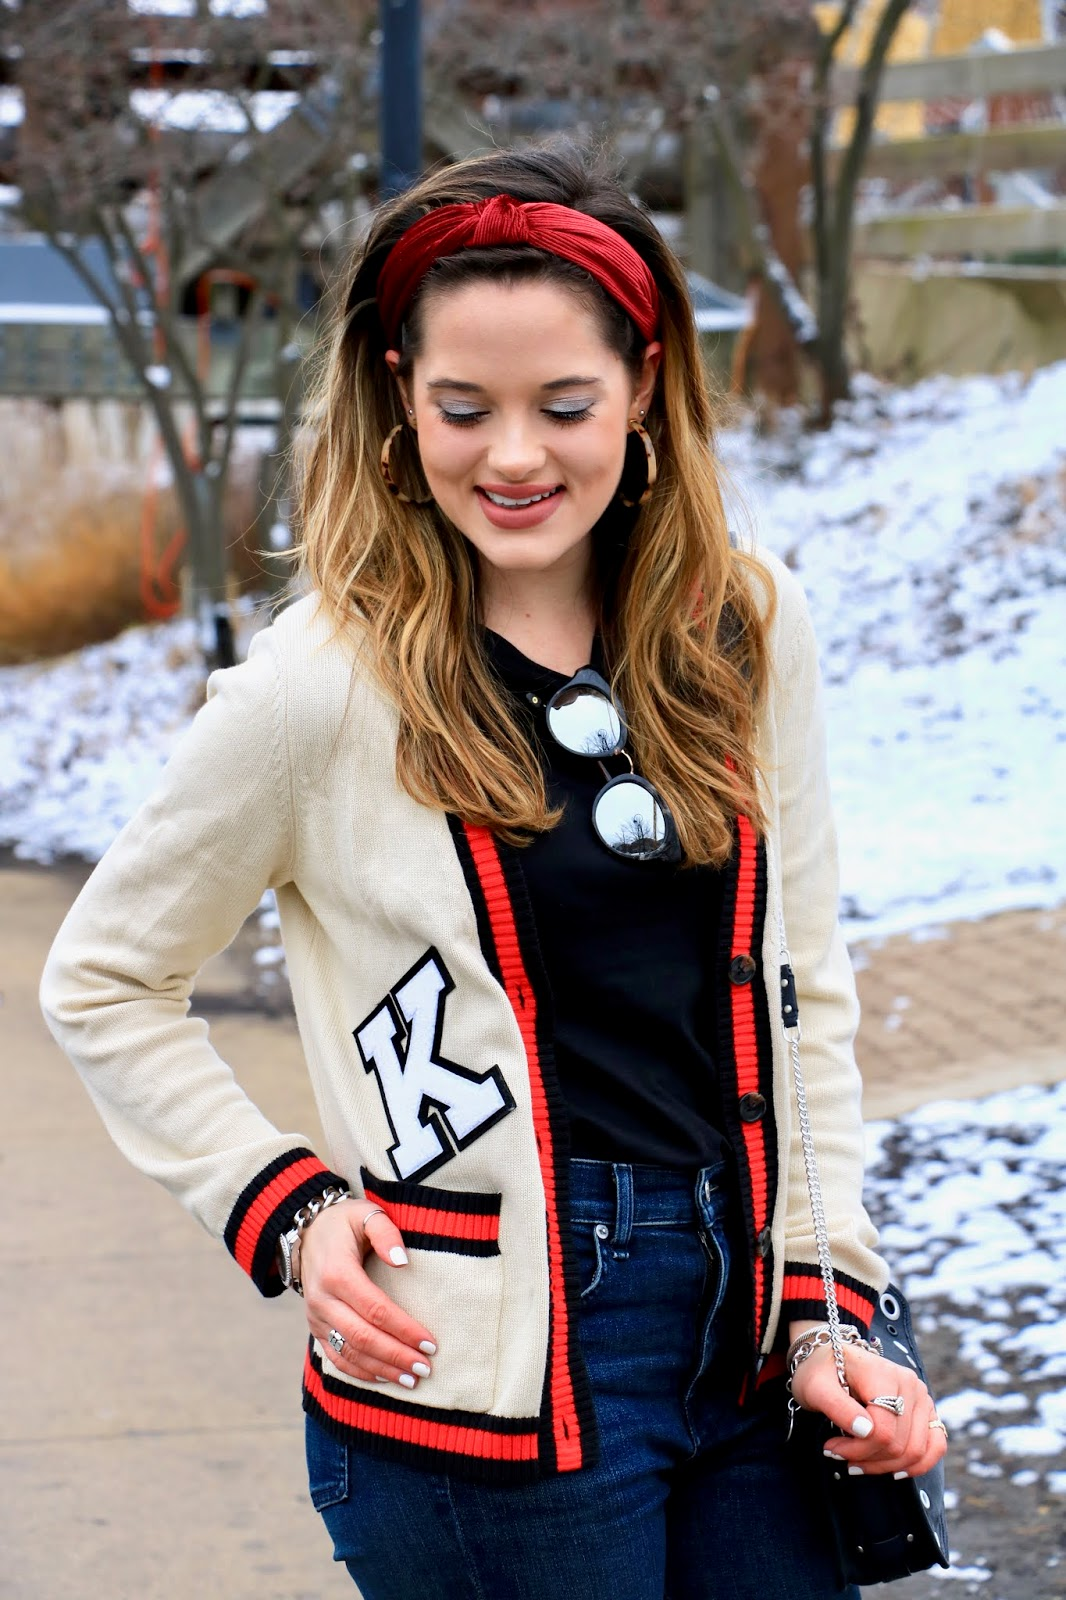 Nyc fashion blogger Kathleen Harper wearing a red knotted headband